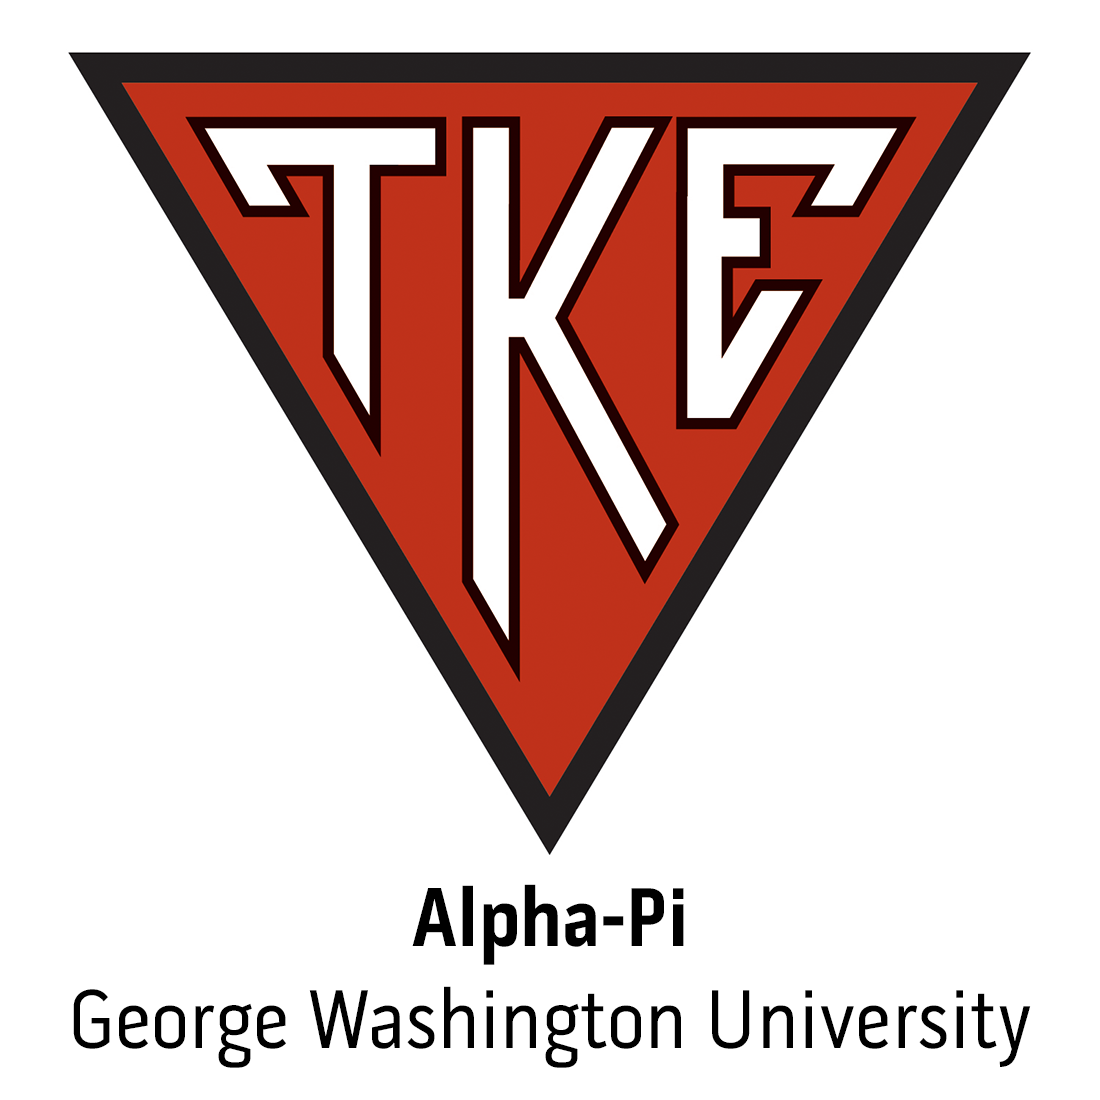 Alpha-Pi Chapter at George Washington University